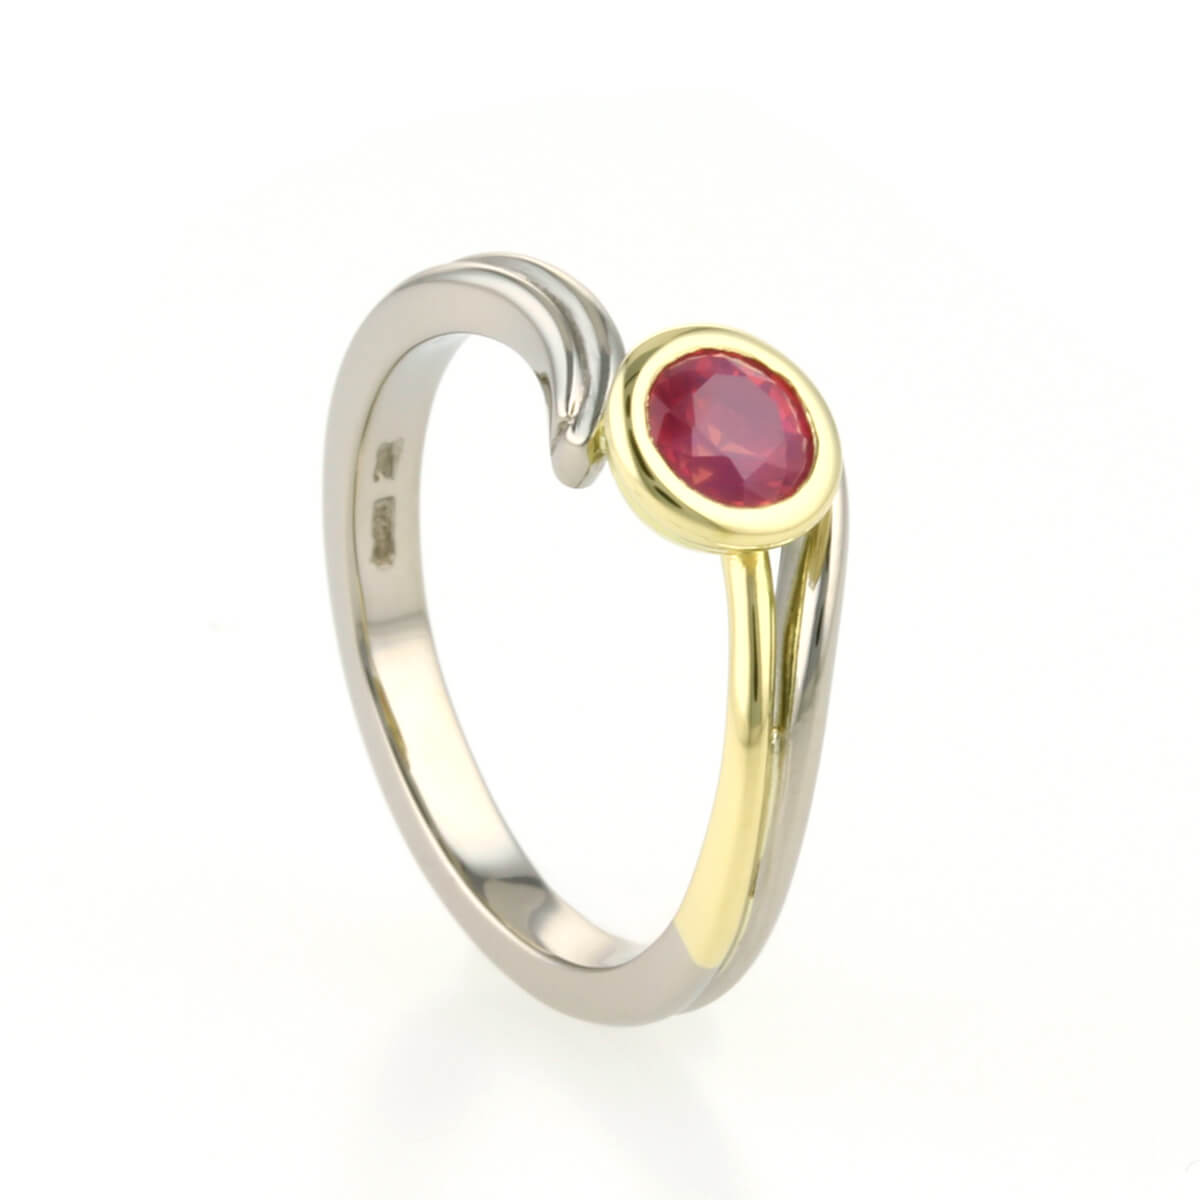 handmade 18ct yellow white gold and ruby engagement ring 3